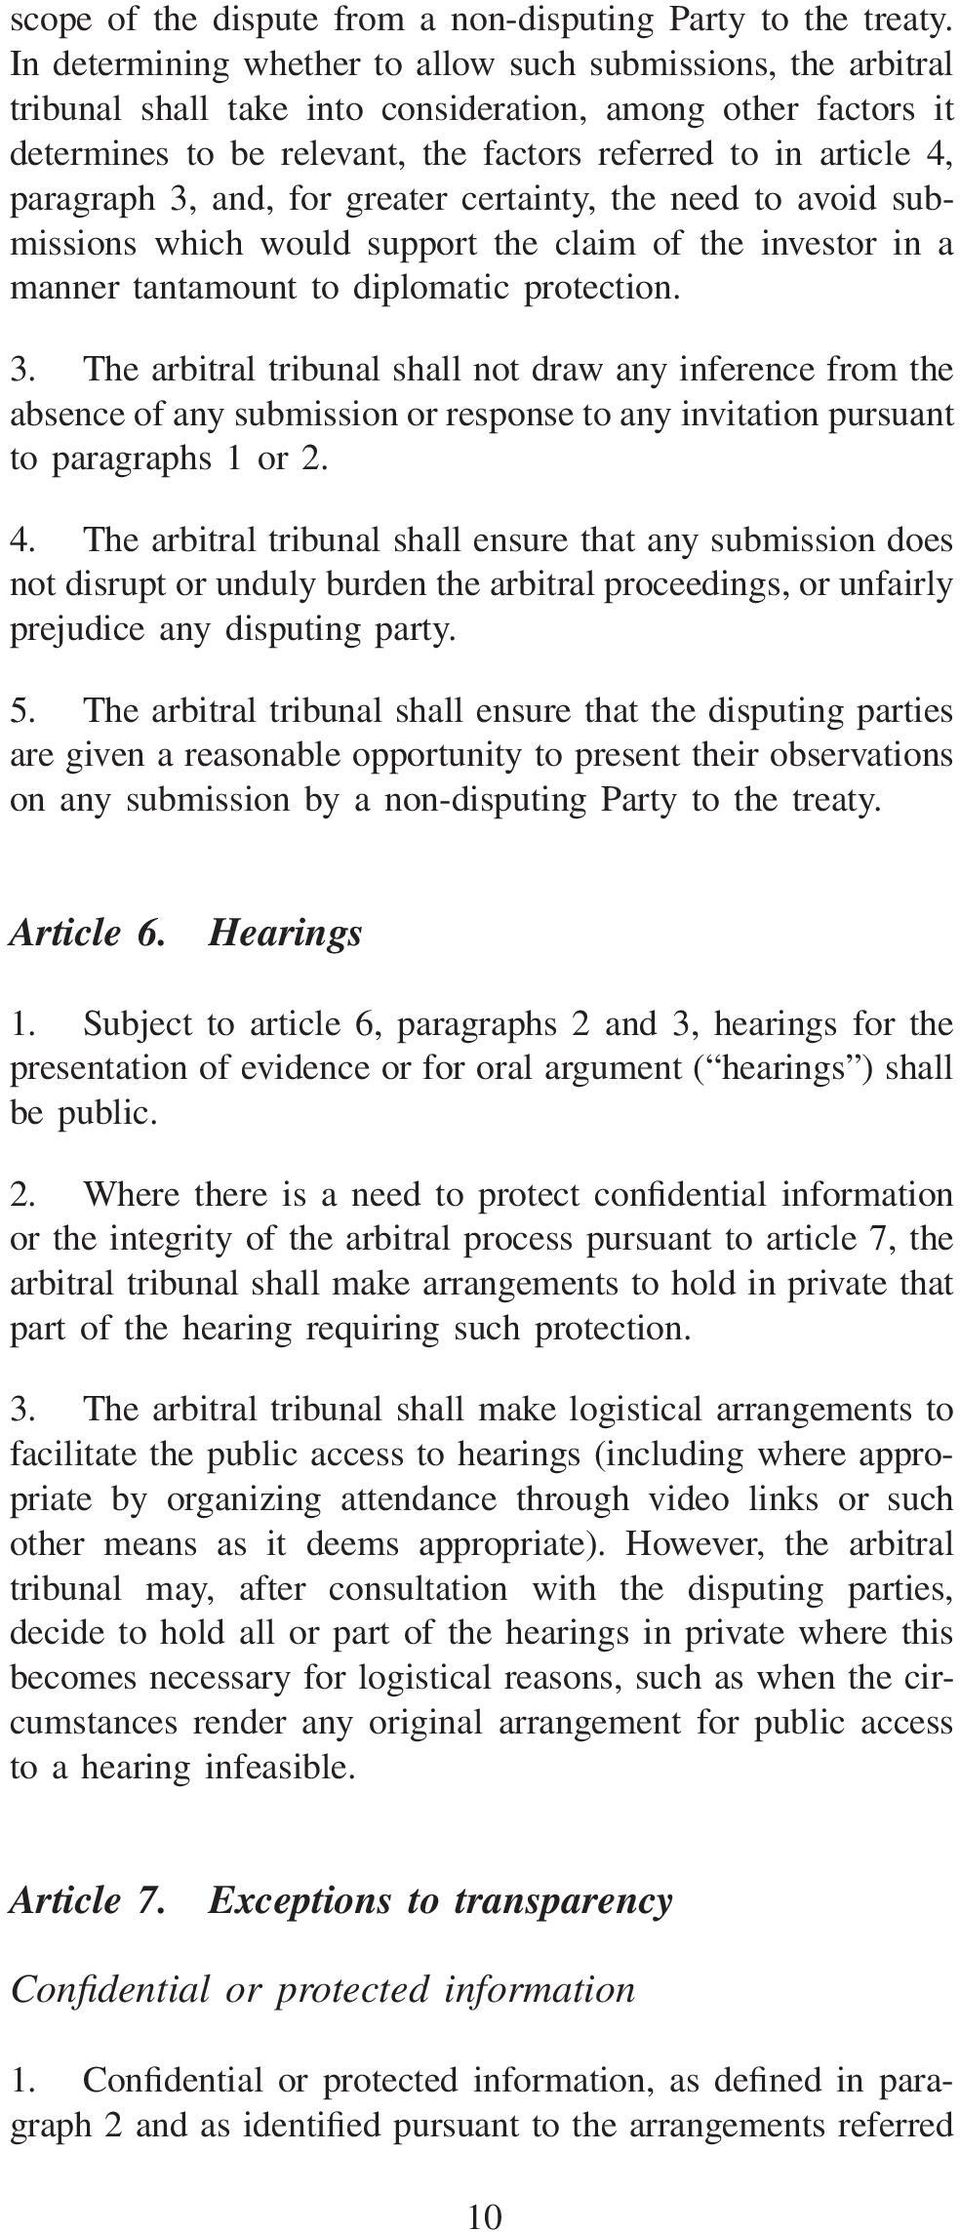 paragraph 3, and, for greater certainty, the need to avoid submissions which would support the claim of the investor in a manner tantamount to diplomatic protection. 3. The arbitral tribunal shall not draw any inference from the absence of any submission or response to any invitation pursuant to paragraphs 1 or 2.